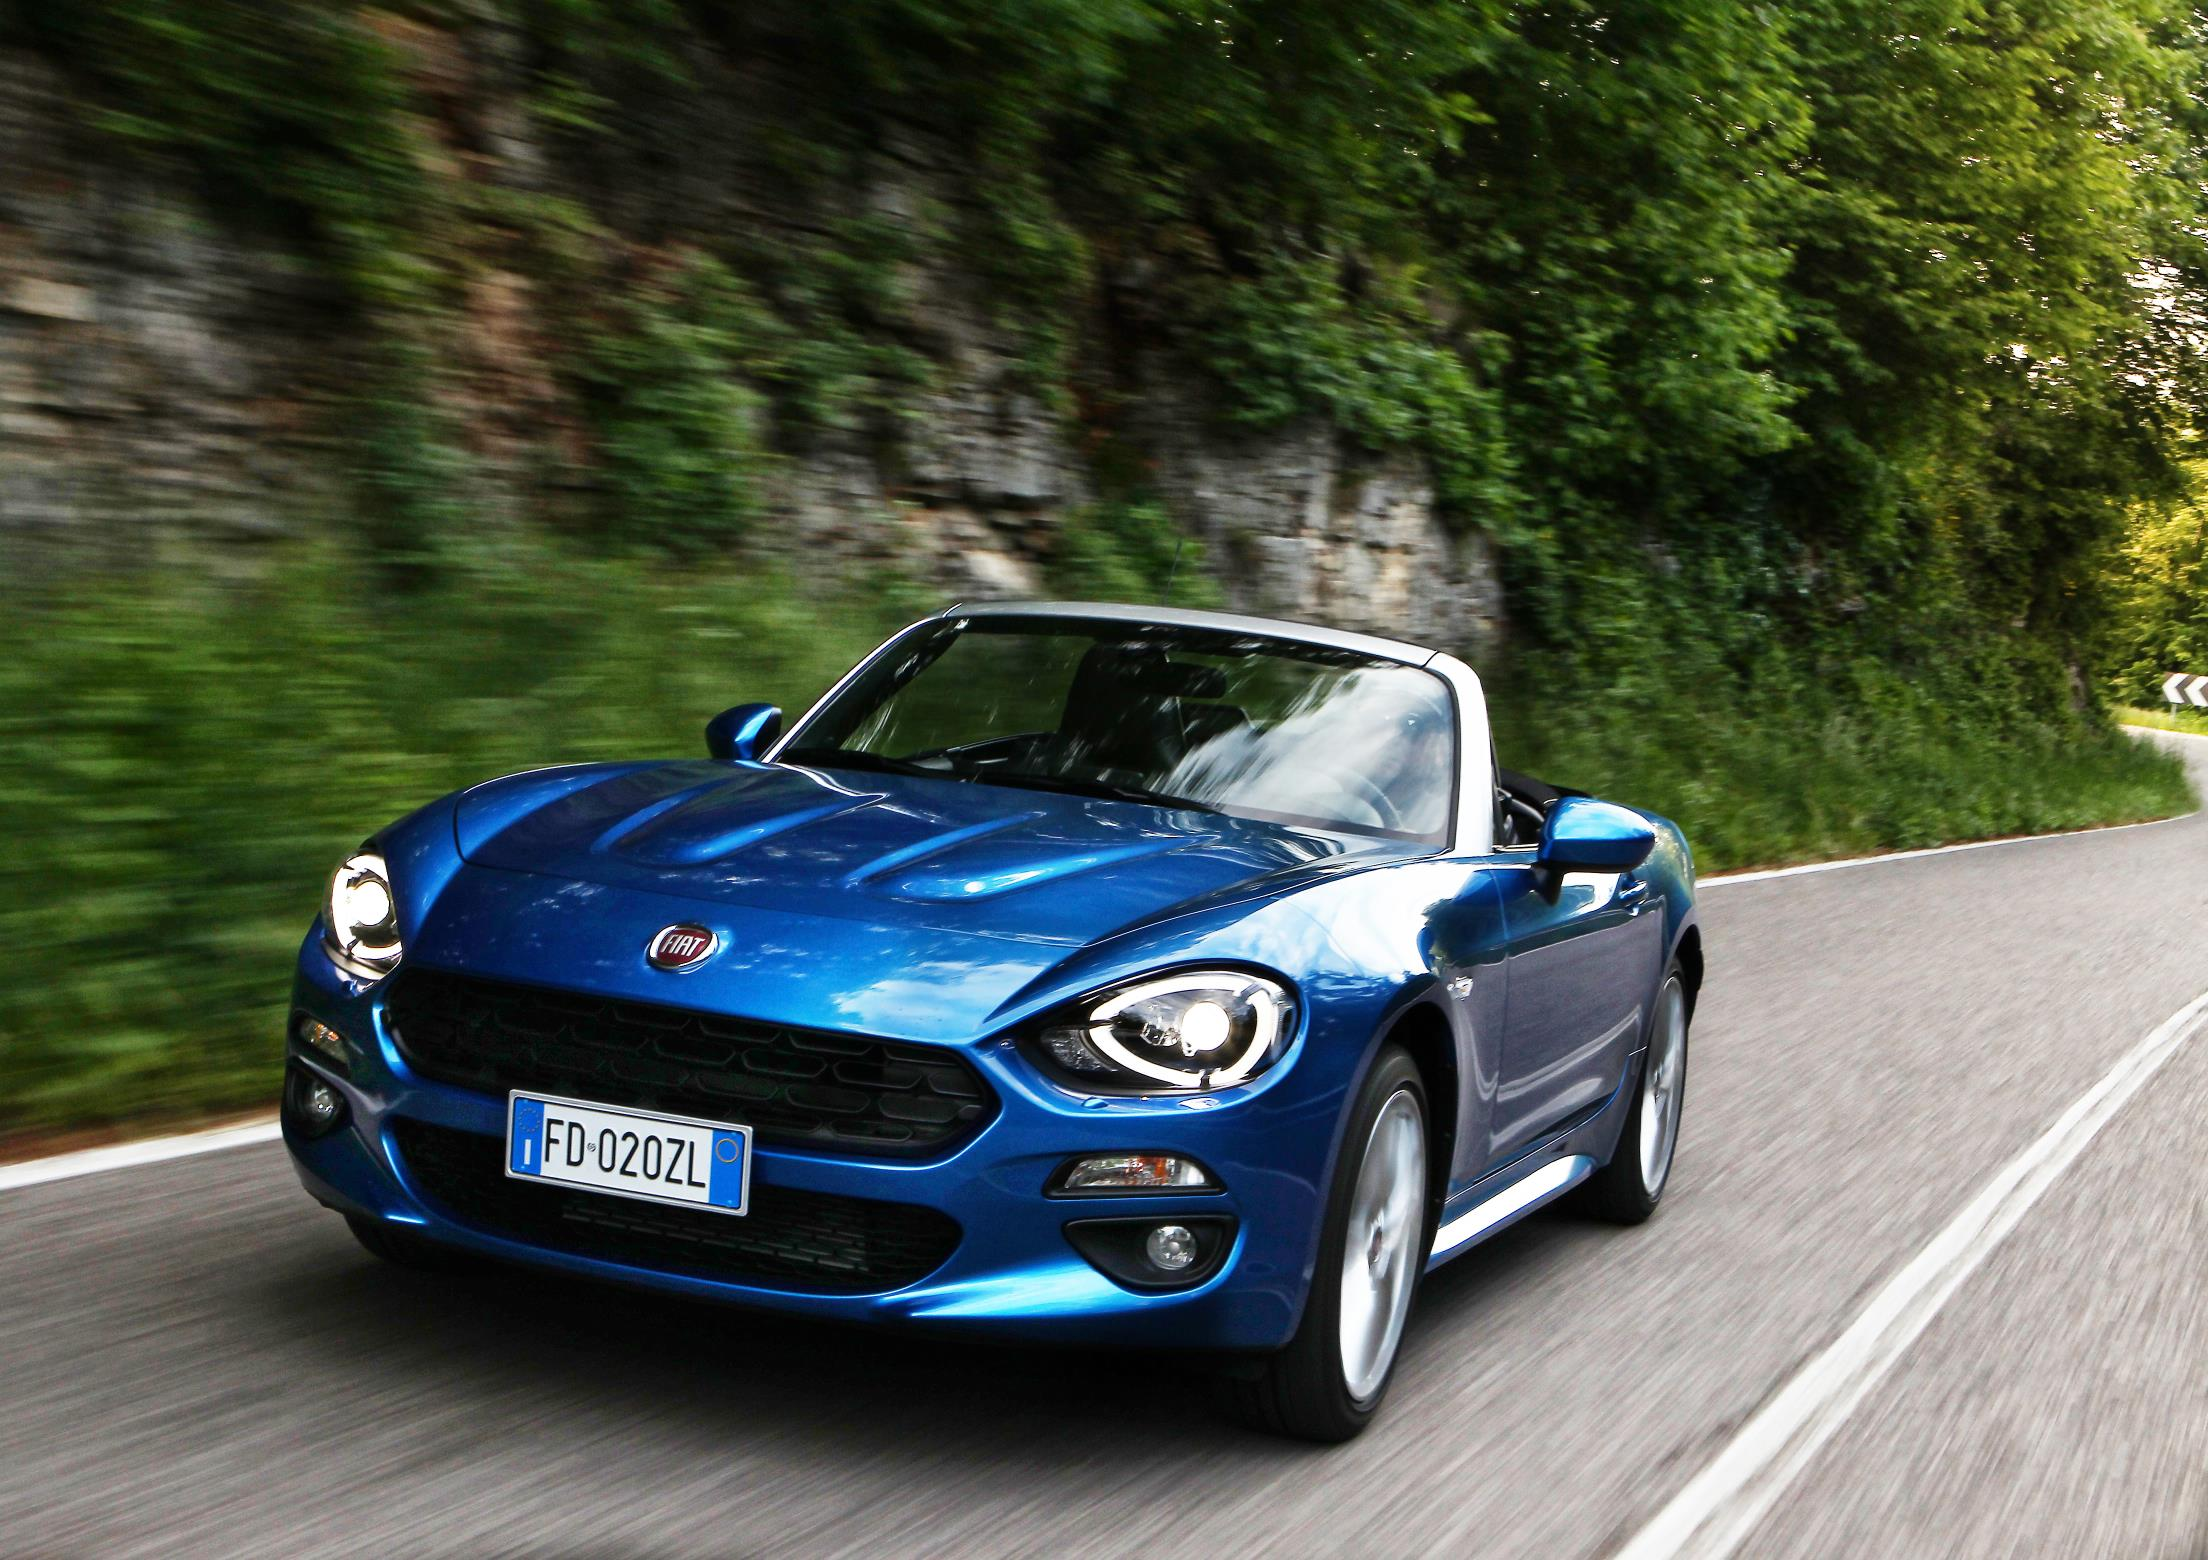 jeremy clarkson reviews the fiat 124 spider calls it inferior to the mazda mx 5 autoevolution. Black Bedroom Furniture Sets. Home Design Ideas